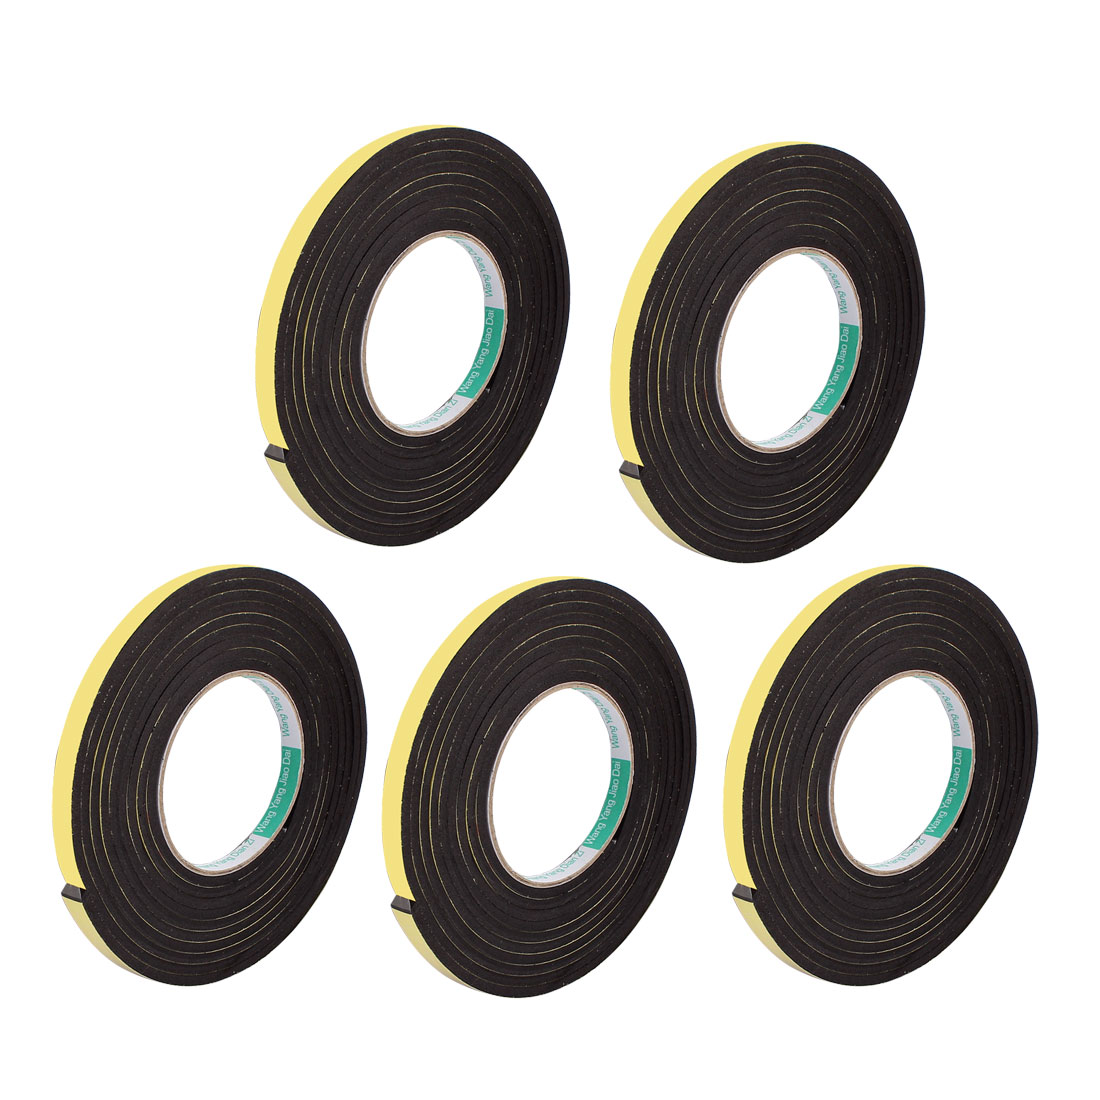 5 Pcs 10mmx4mm Single Sided Sponge Tape Adhesive Sticker Foam Glue Strip Sealing 3 Meters 10Ft